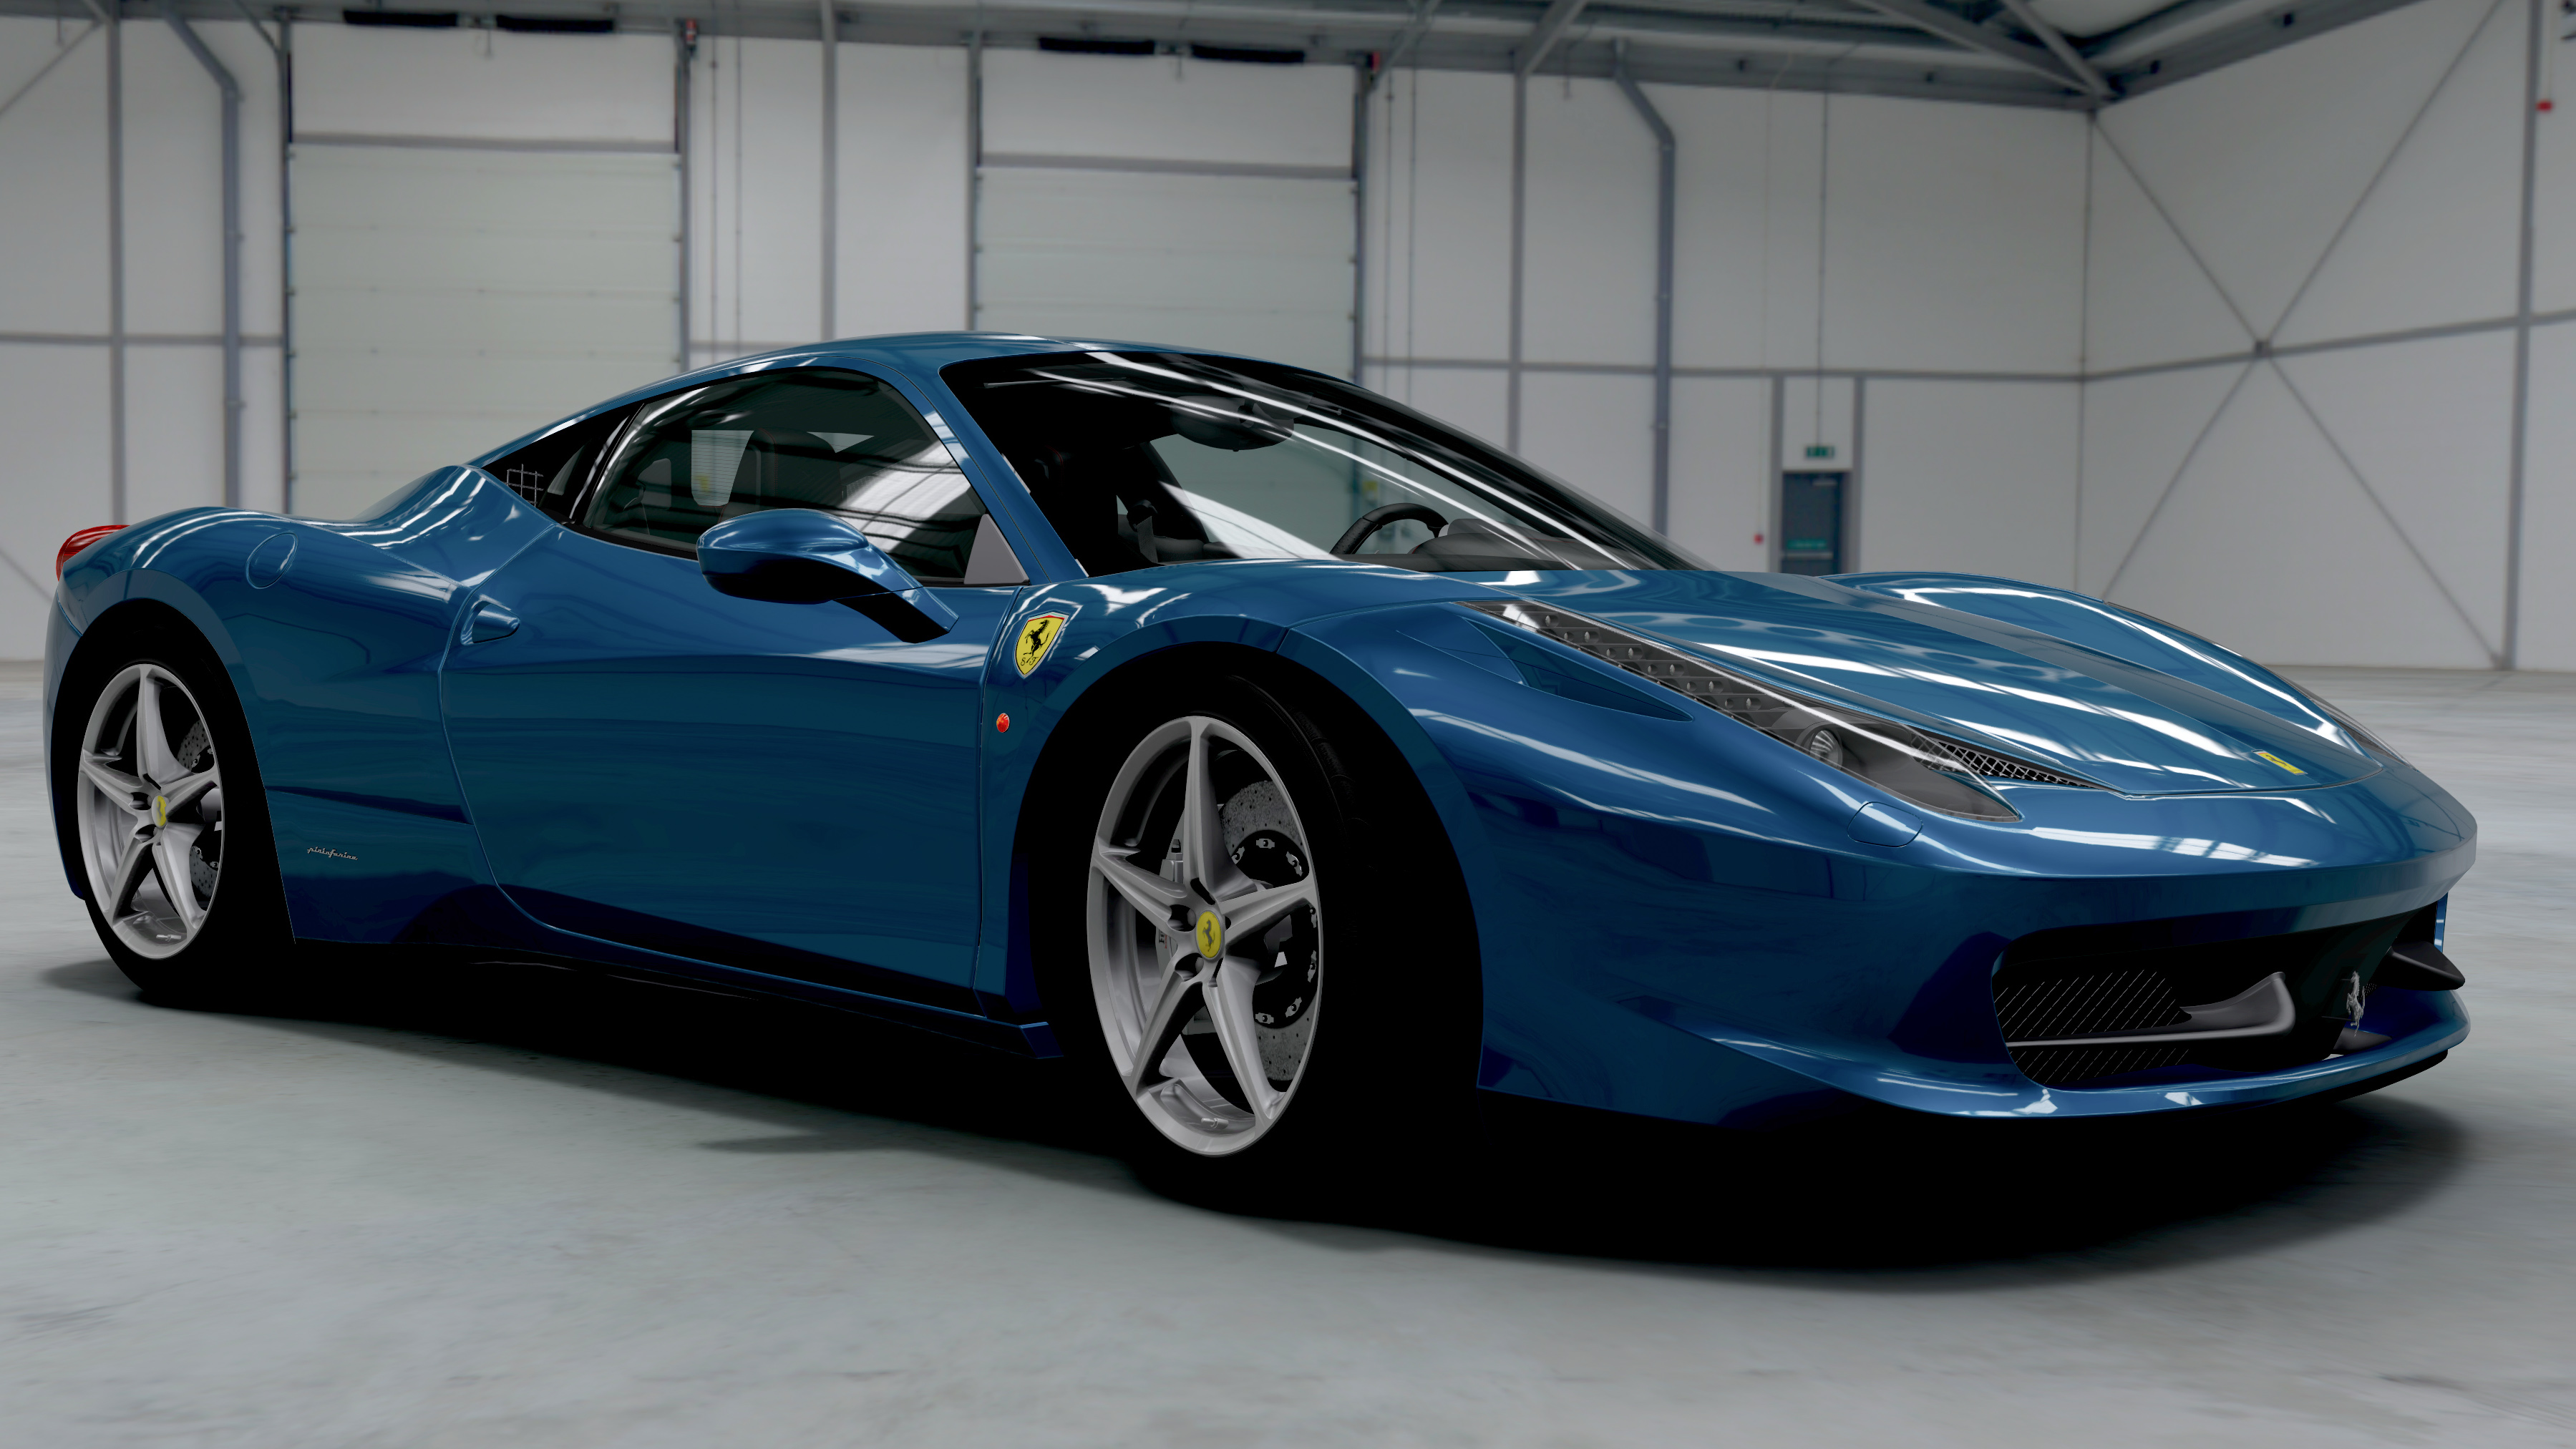 interested about vehicles love to have a ferrari 458 italia wallpaper 3599x2025